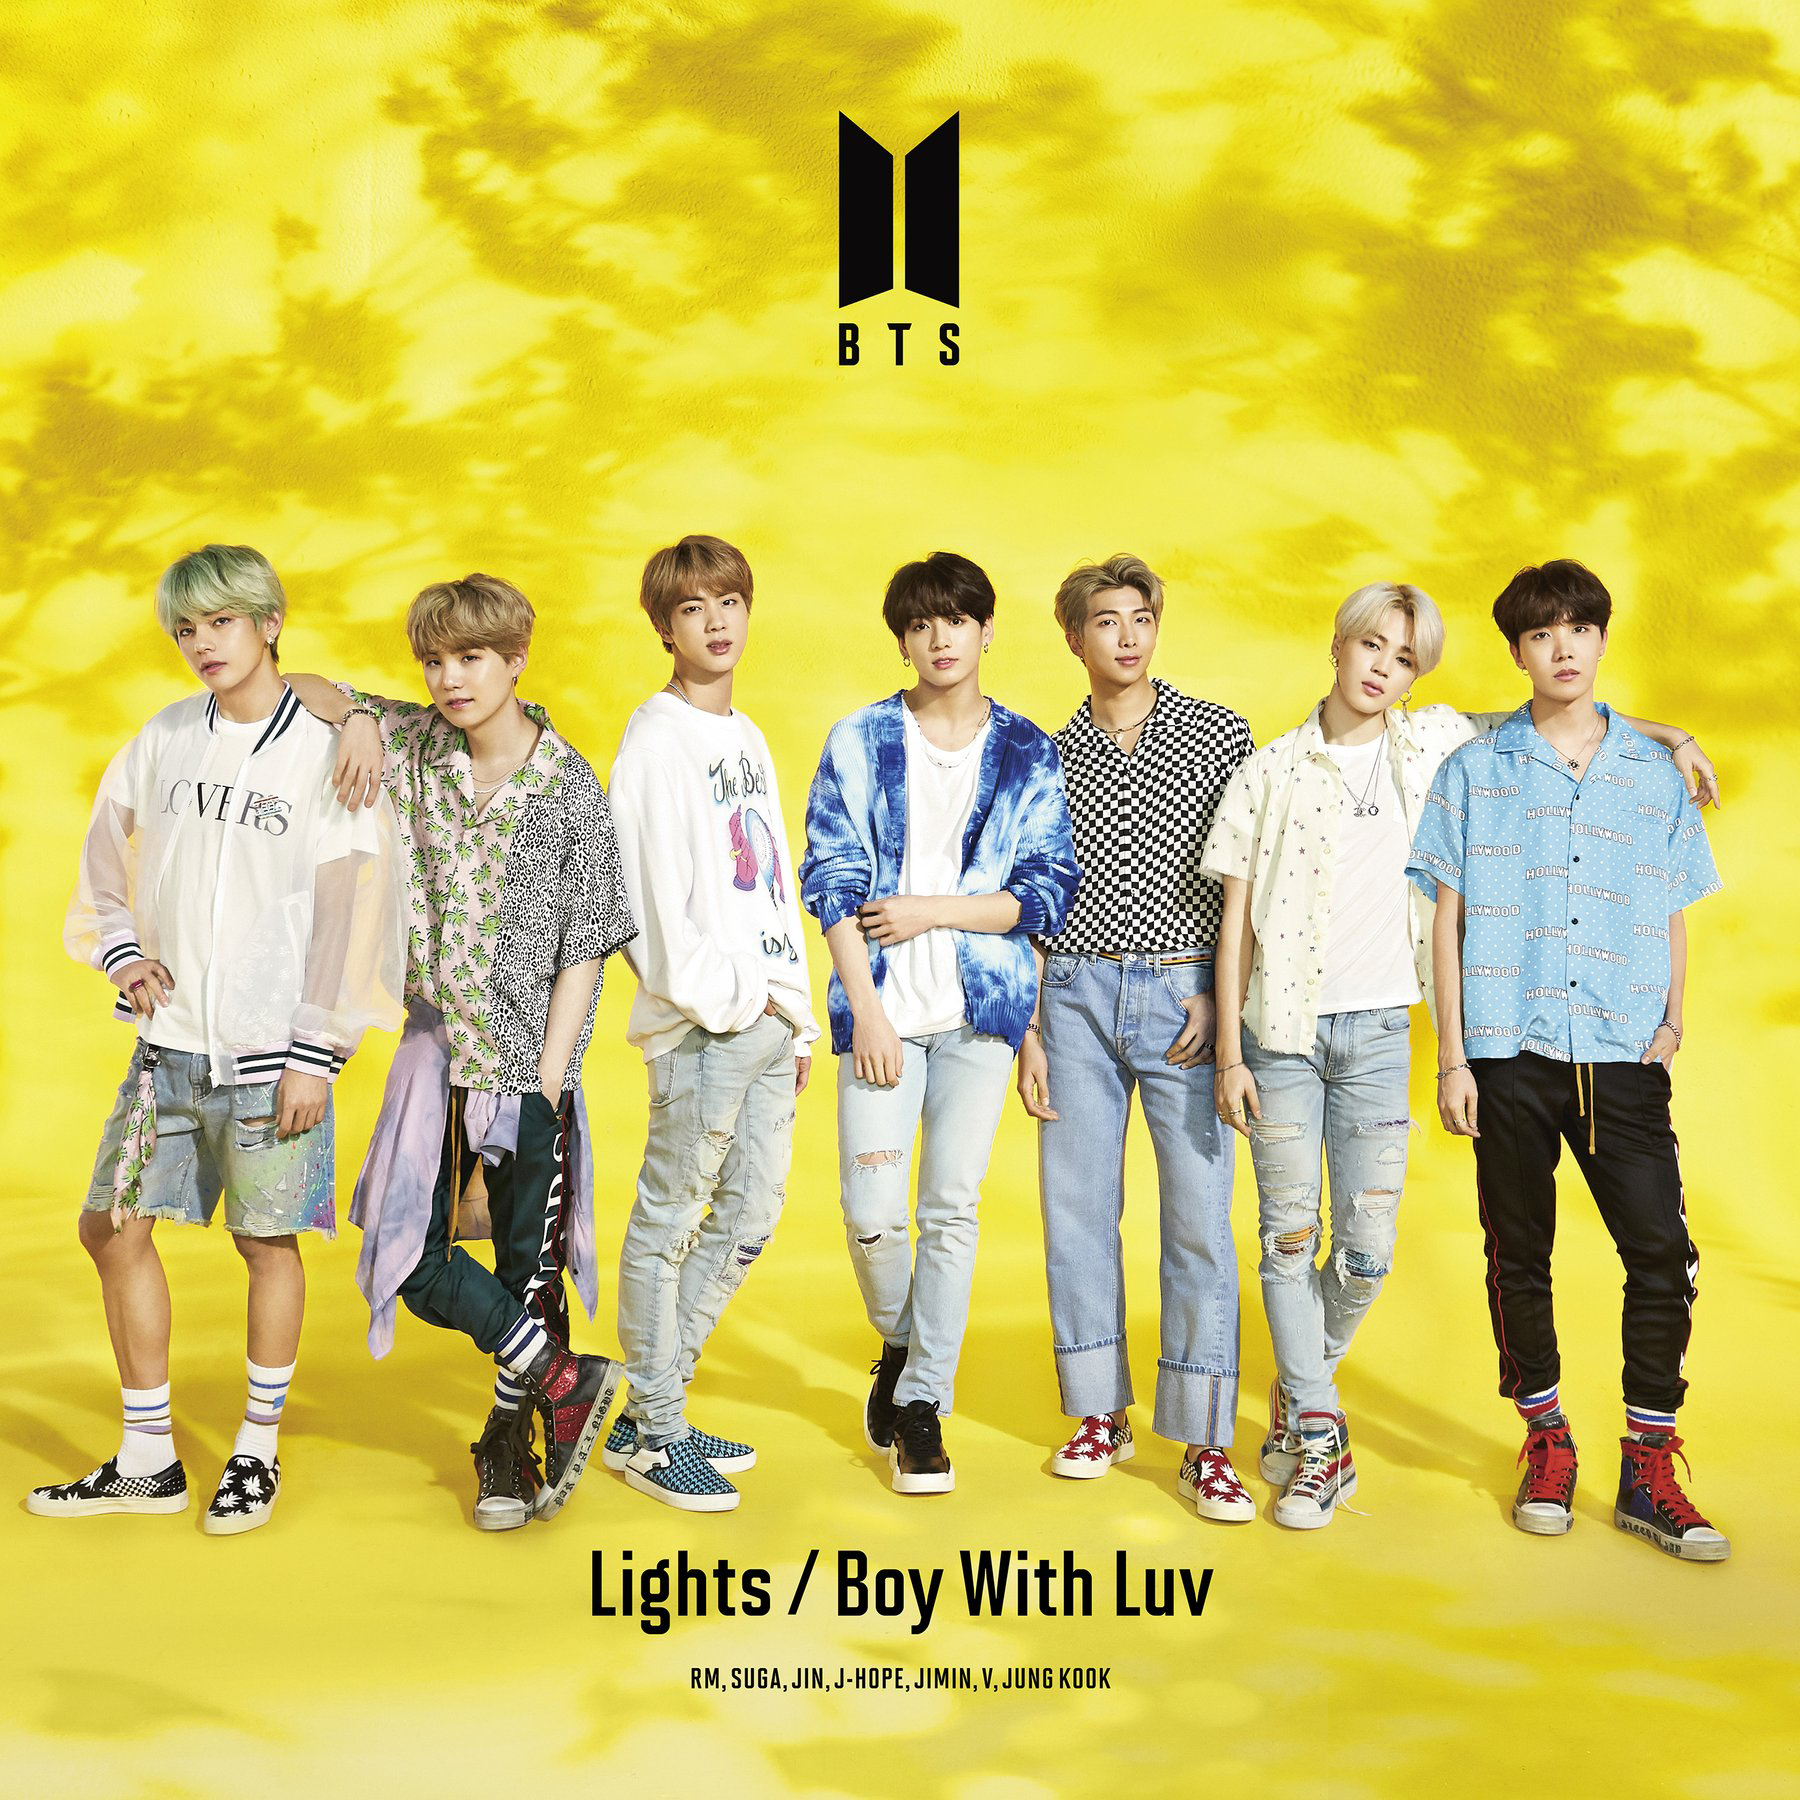 BTS Lights Boy With Luv Type A cover art.png